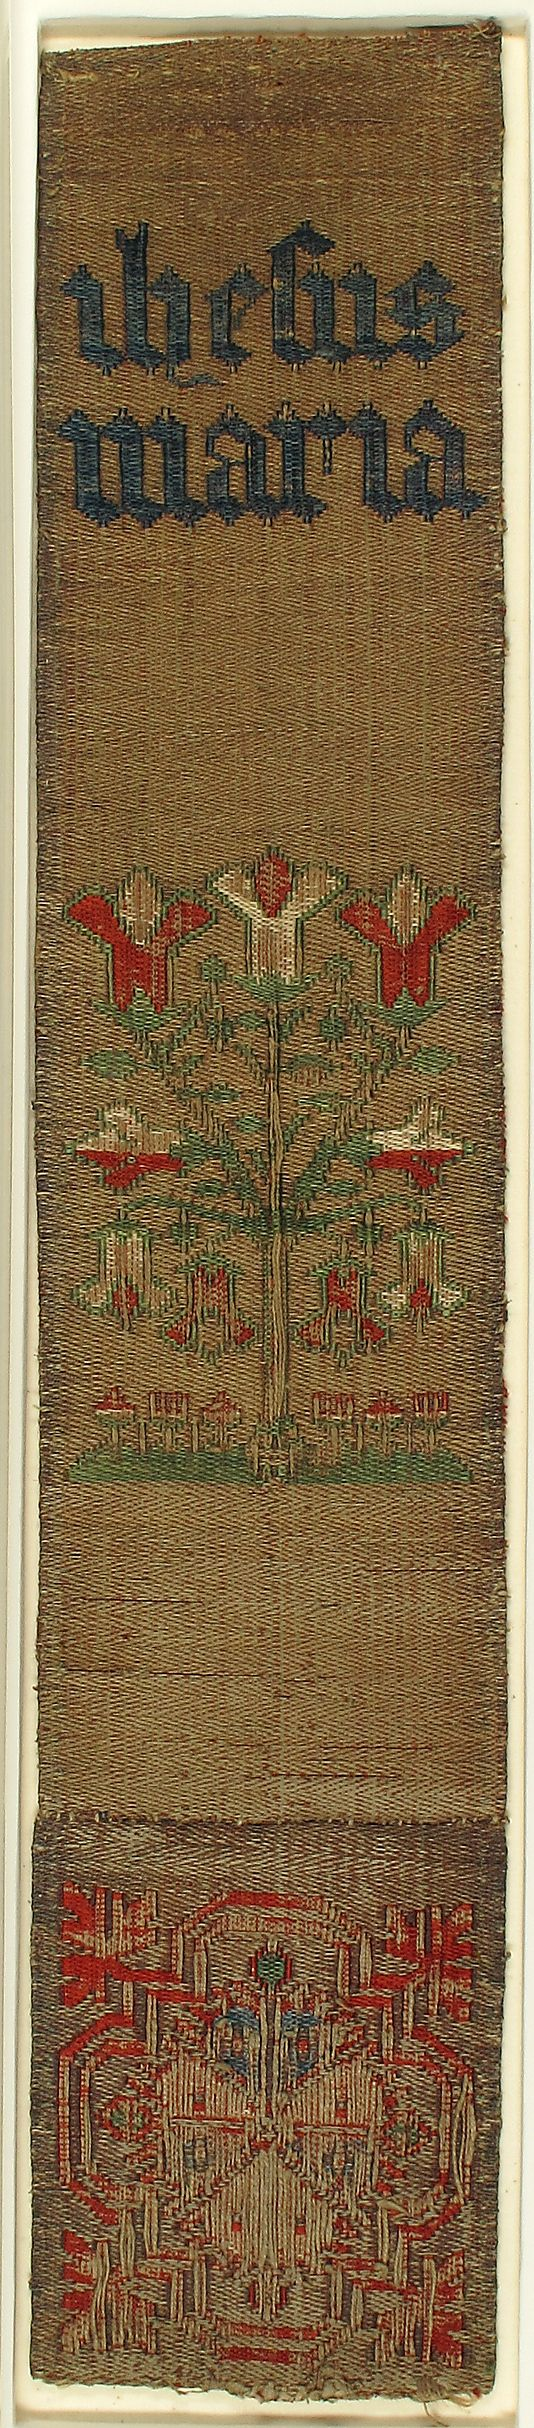 Textile Date: 15th century Geography: Made in Cologne, Germany Culture: German Medium: Silk, linen and metal thread Accession Number: 09.50.922